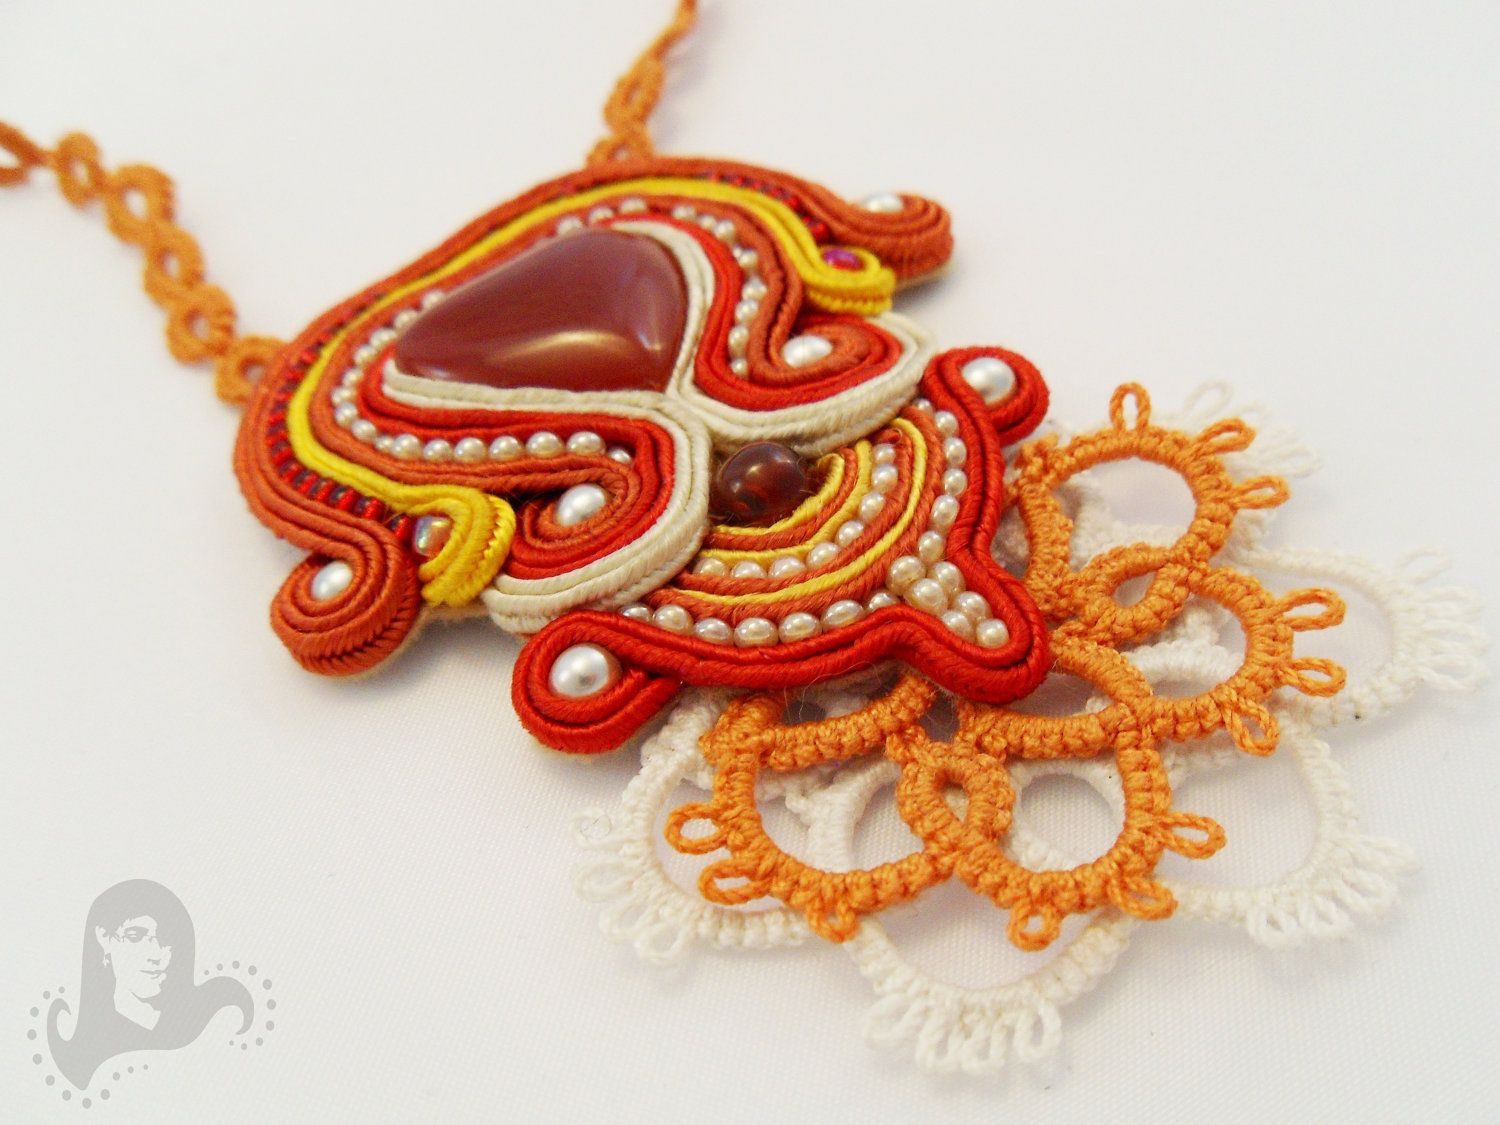 Soutache and tatting autumn colors necklace - Heart in Flames - orange and red soutache pendant on tatted chain. $75.00, via Etsy.